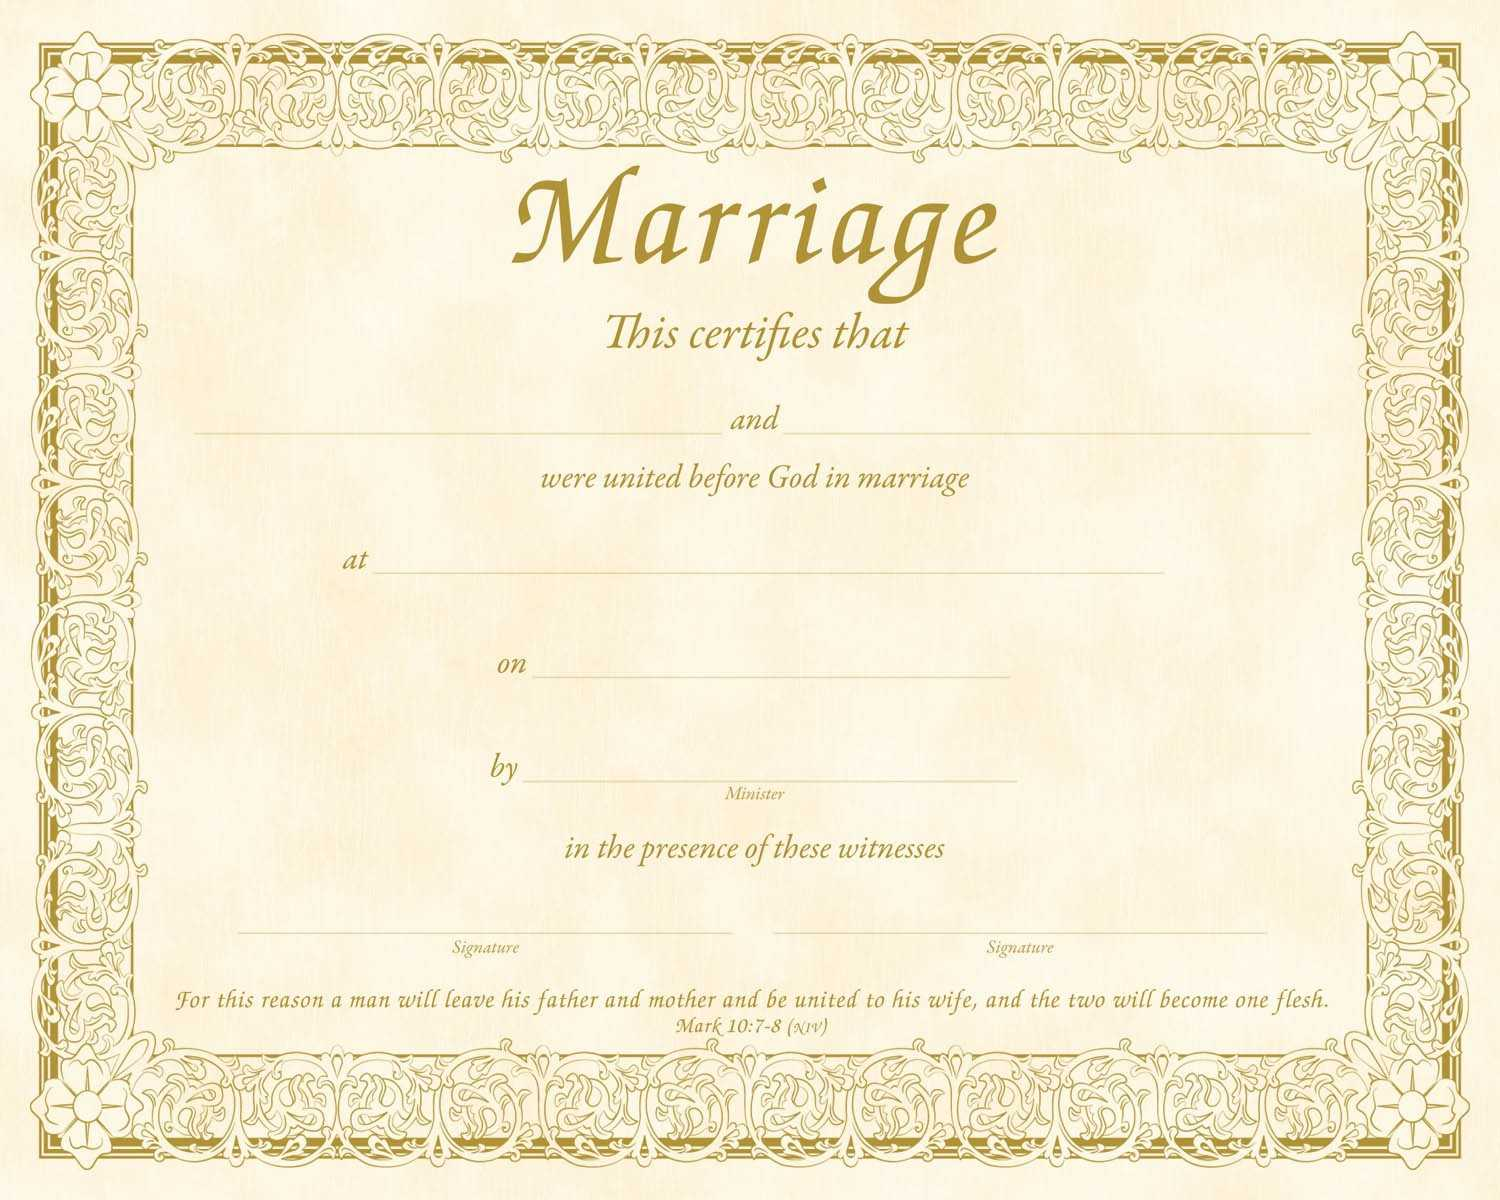 Christian Certificate Template ] - Christian Marriage With Regard To Christian Certificate Template